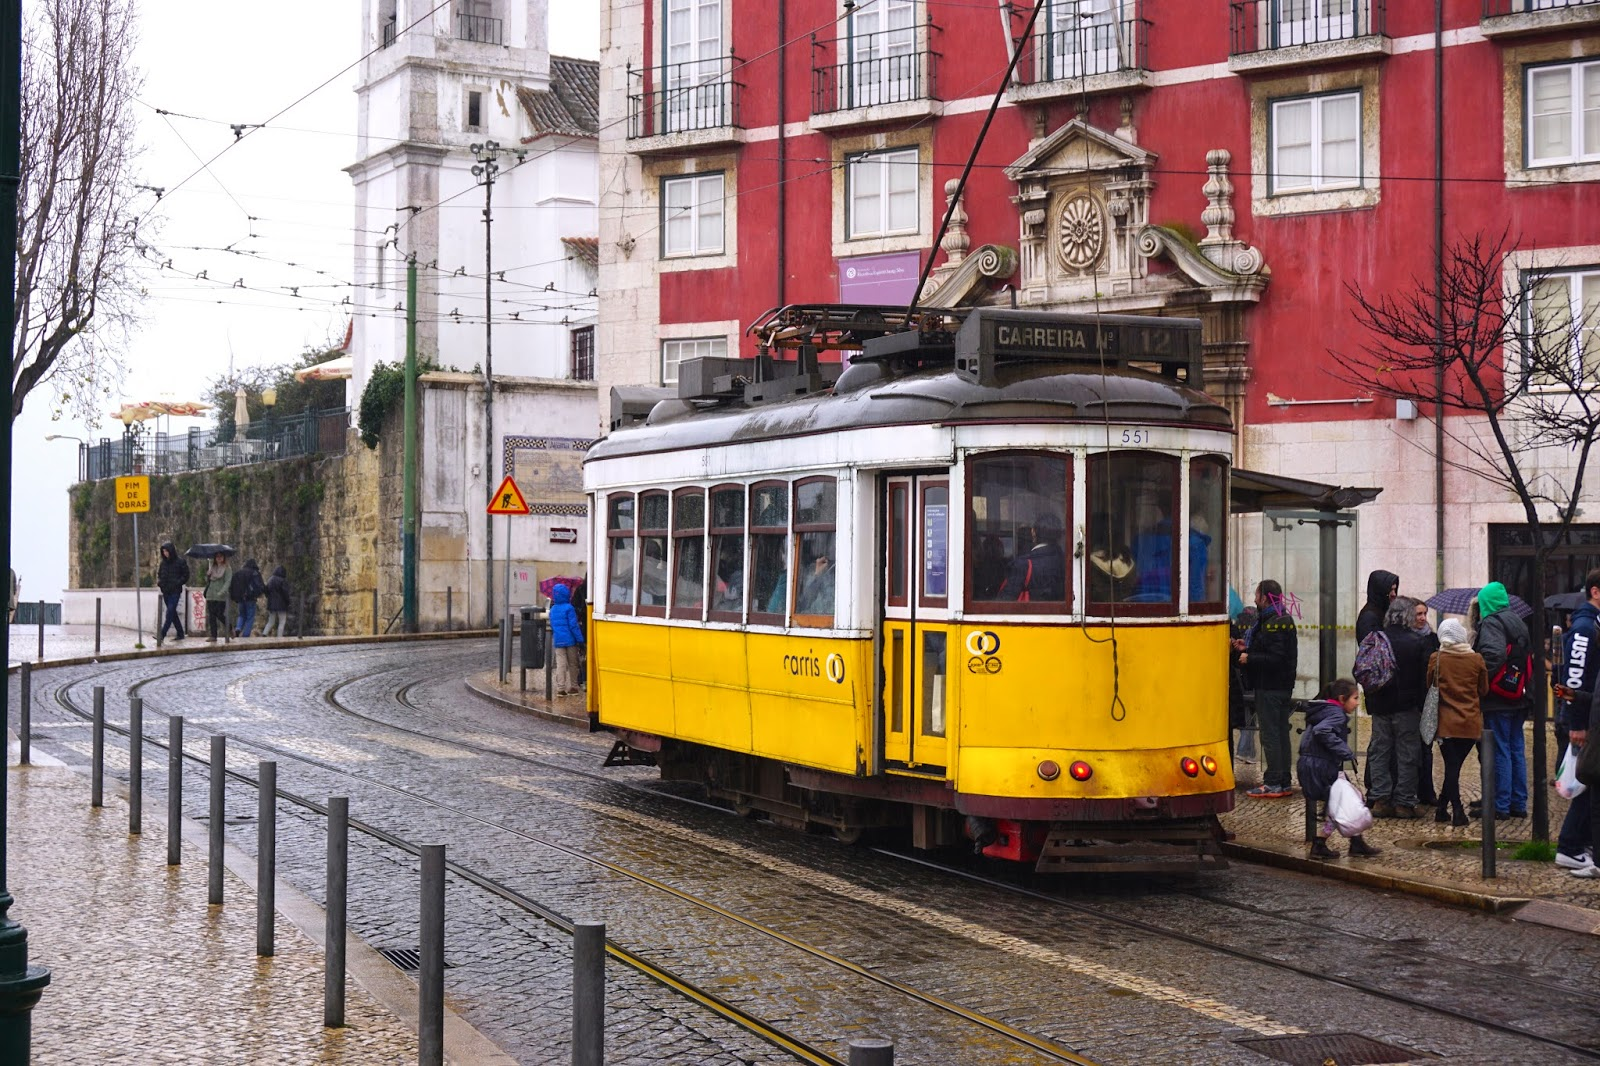 The famous tram 28 tourist tram in Lisbon